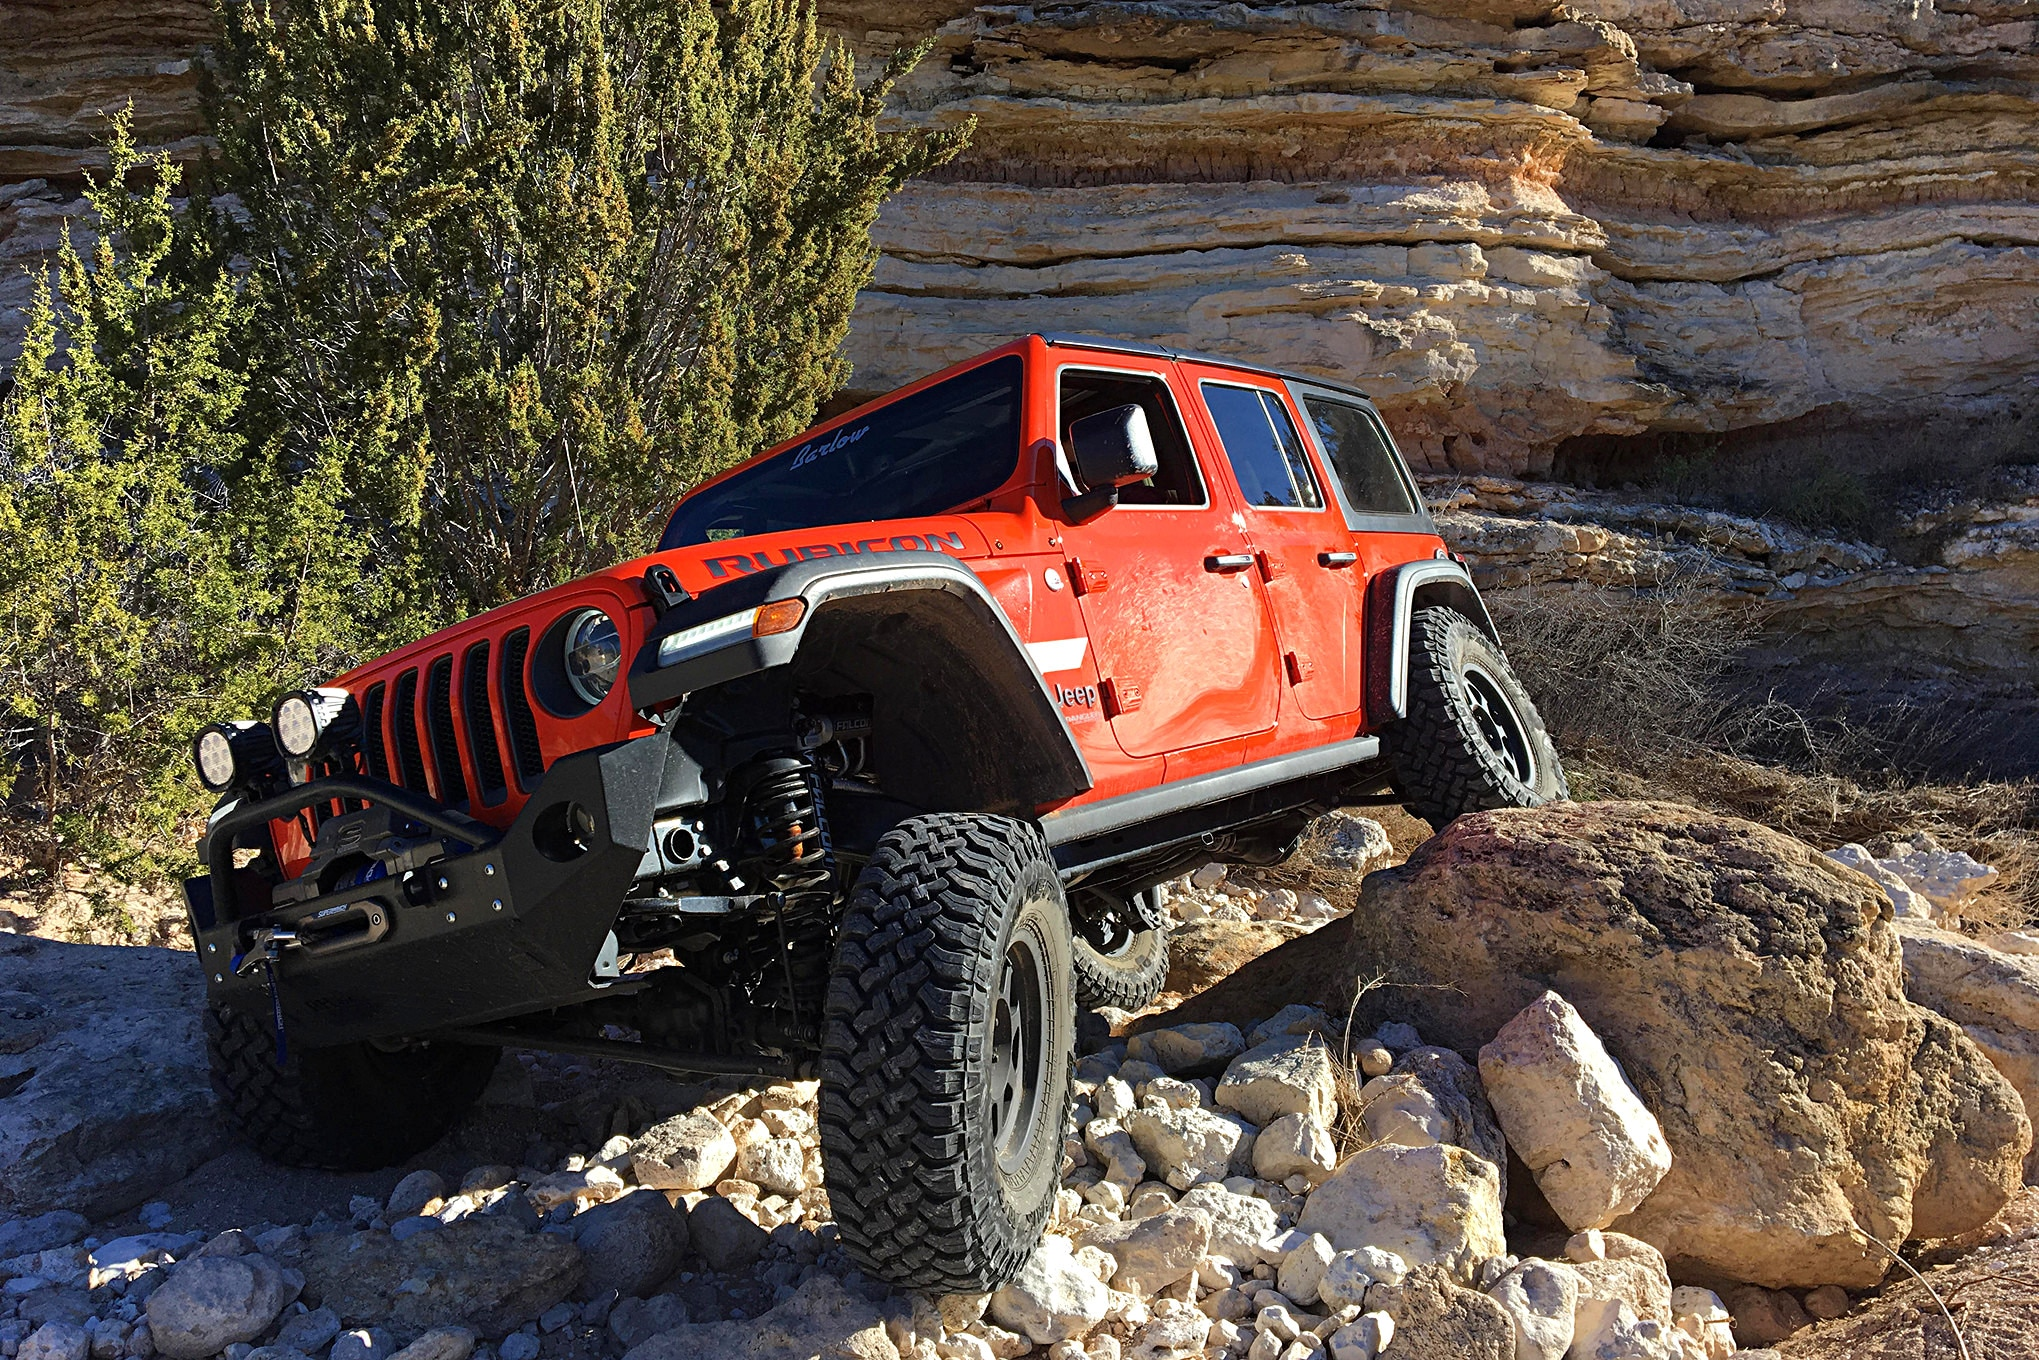 Suspension installation is a success when you can fully articulate your suspension and not rub or bind anything.